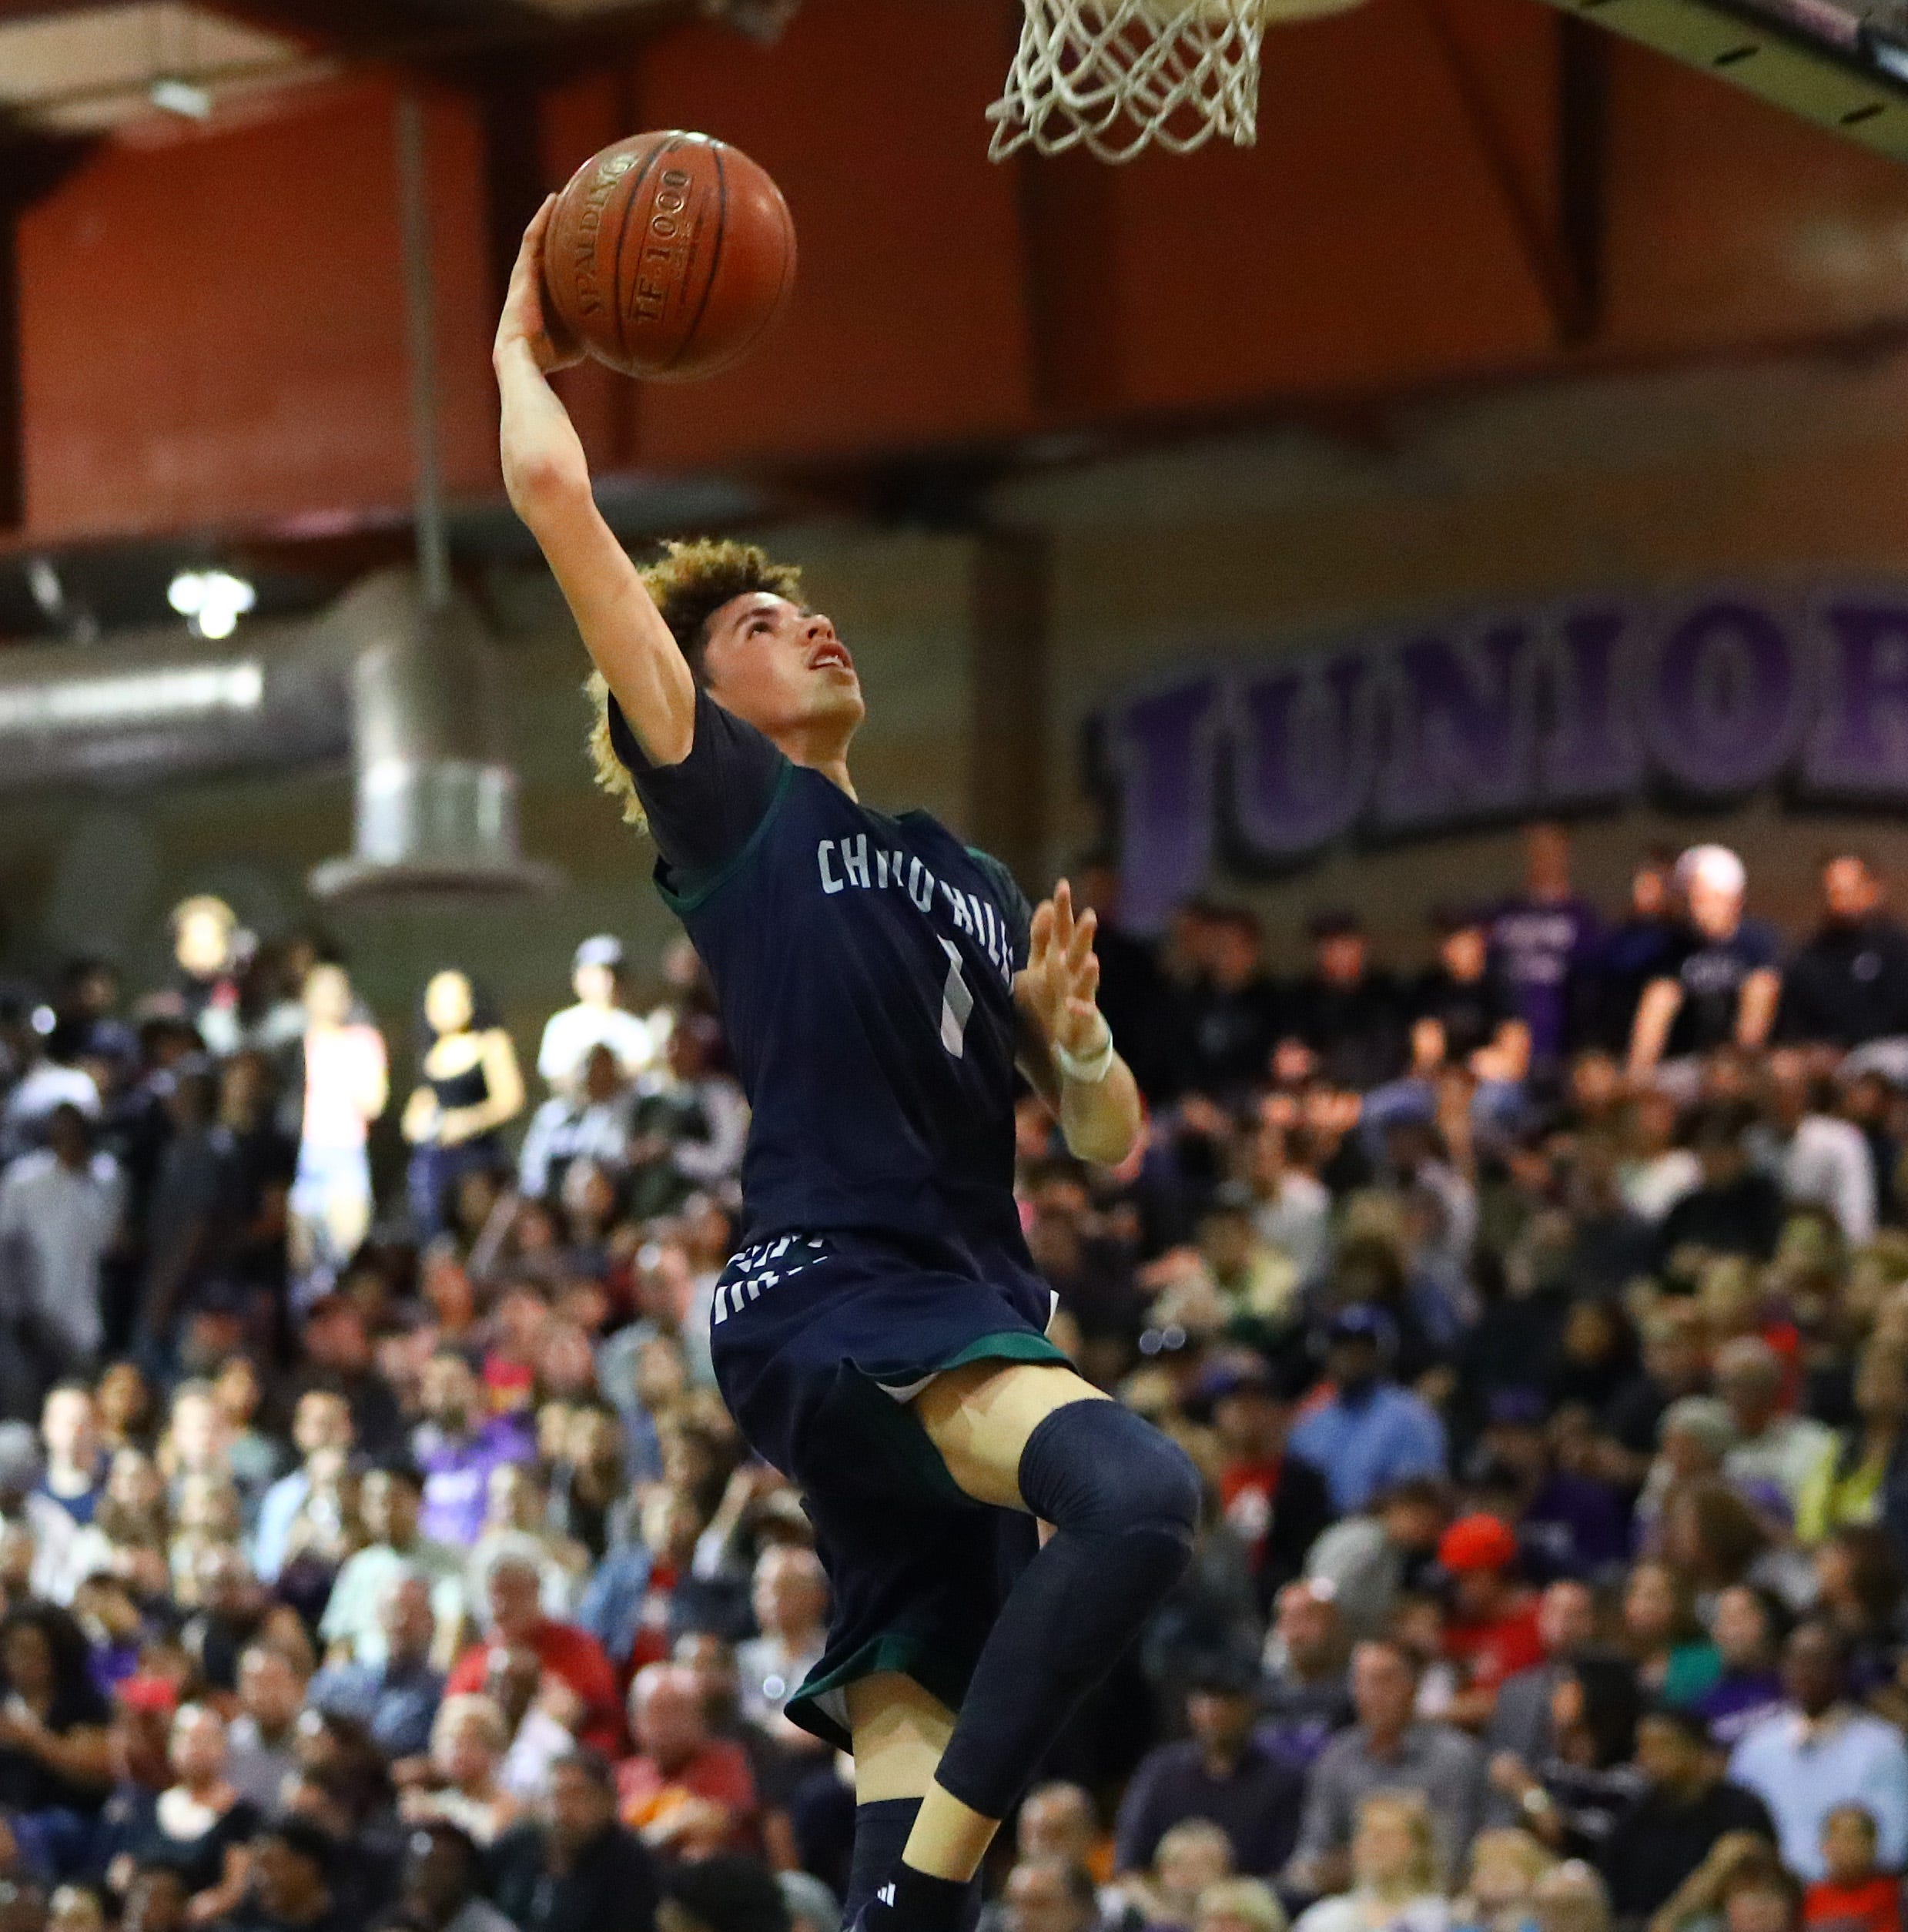 LaMelo Ball will not play at Governor's Challenge, SPIRE Institute withdraws